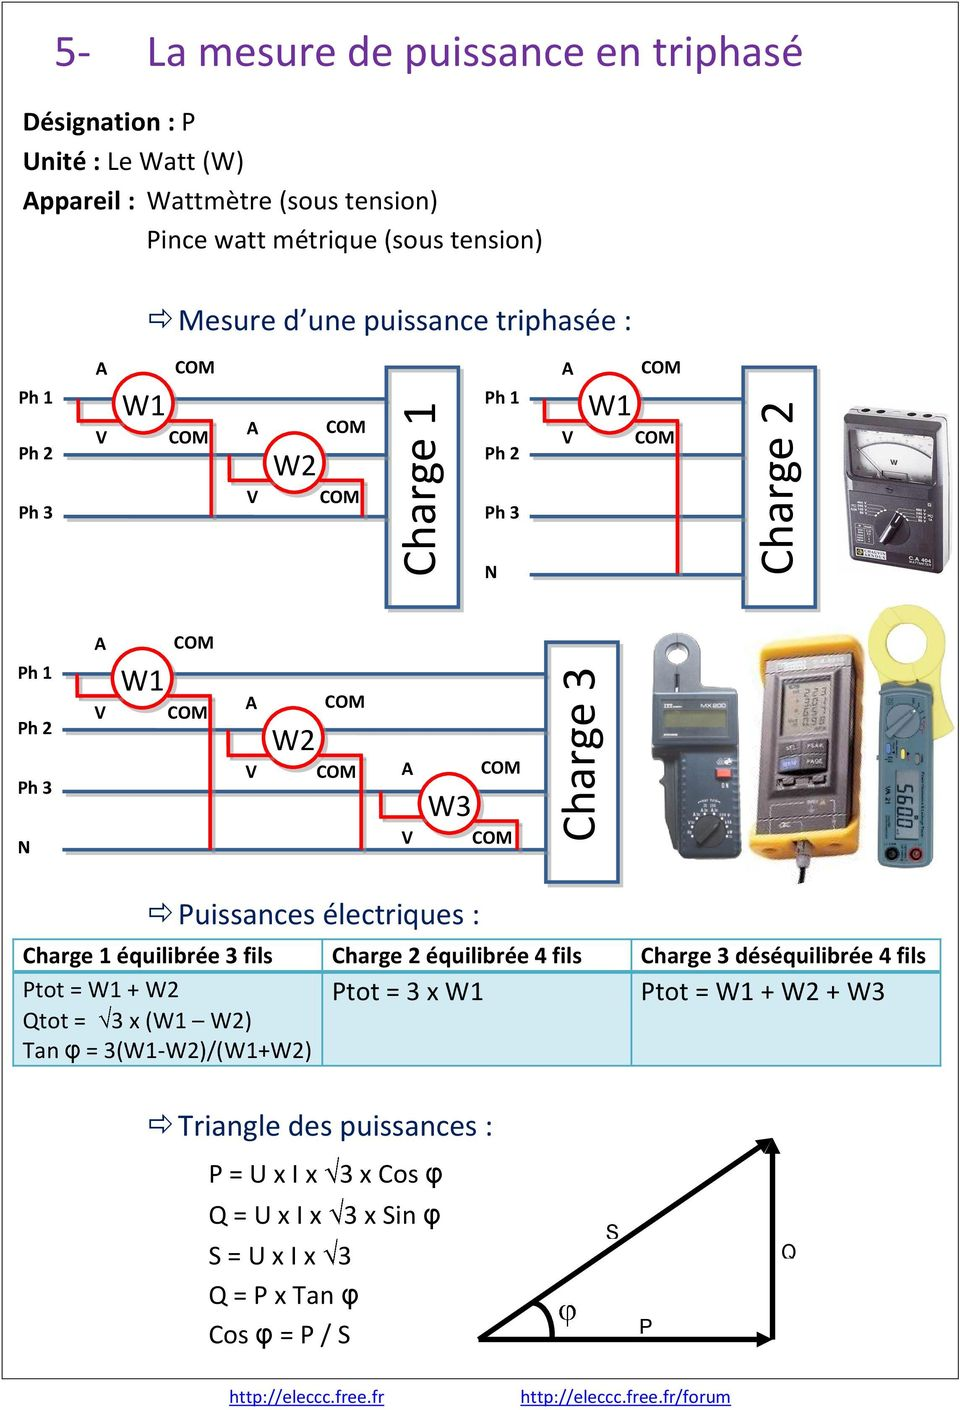 fils Charge 2 équilibrée 4 fils Charge 3 déséquilibrée 4 fils Ptot = W1 + W2 Ptot = 3 x W1 Ptot = W1 + W2 + W3 Qtot = 3 x (W1 W2) Tan φ